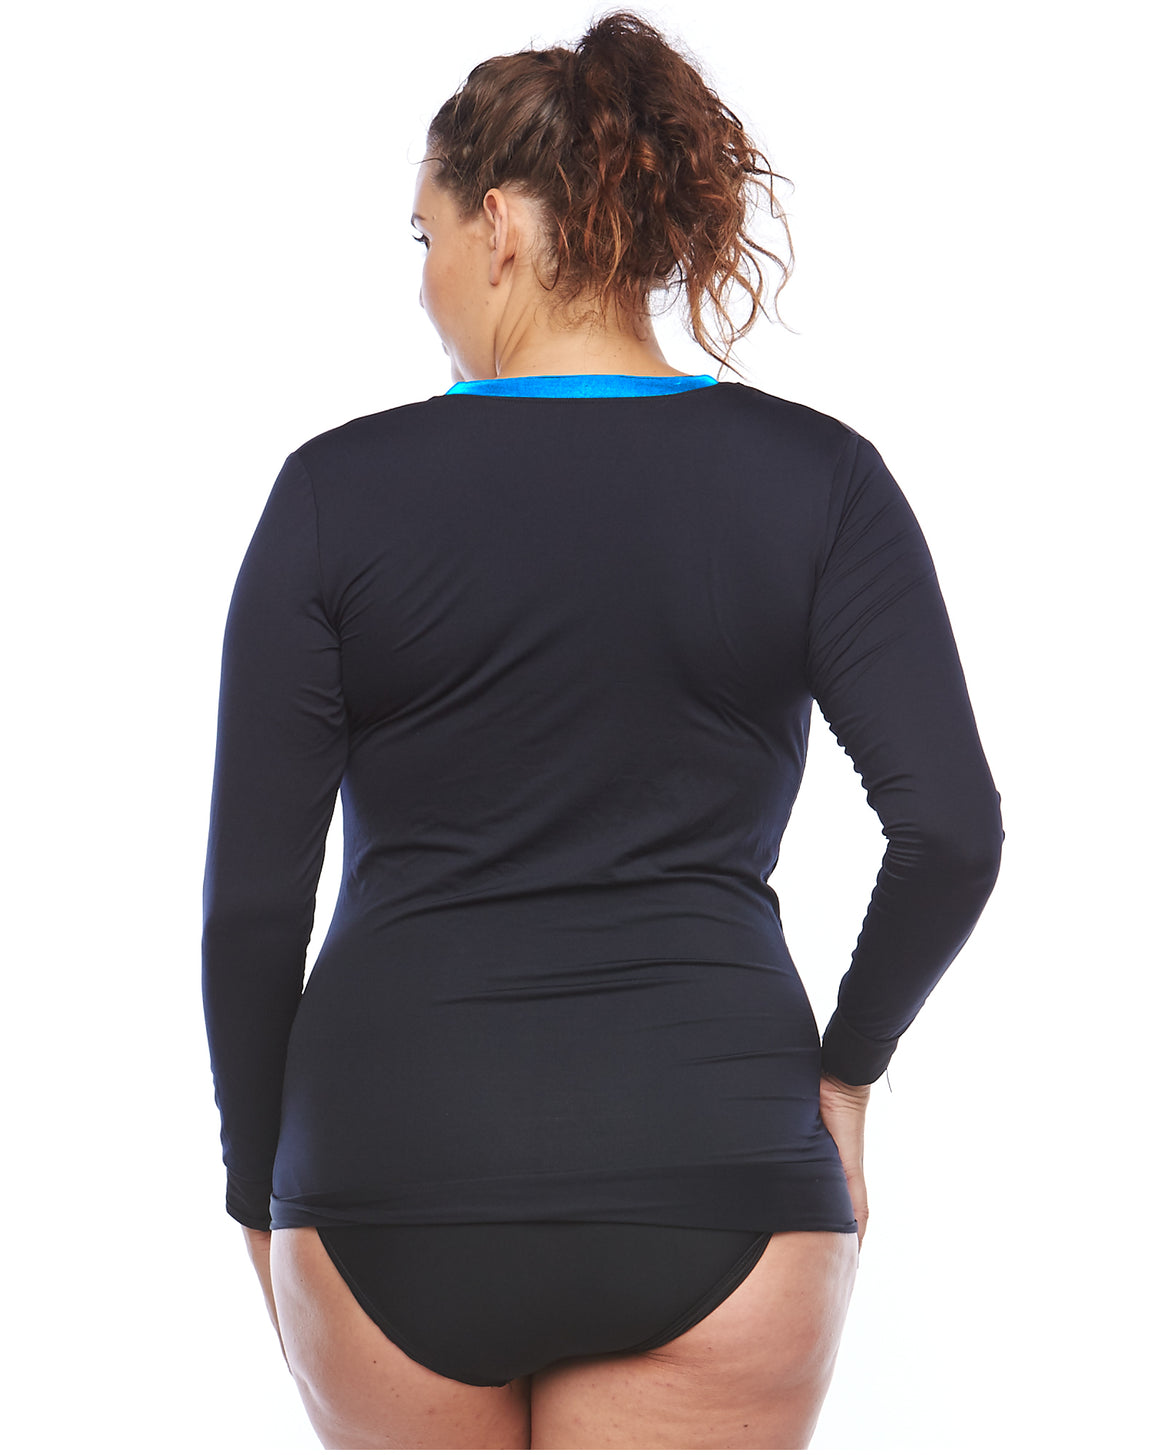 Sun Safe Plus Size Rashie | Curvy Chic Sports